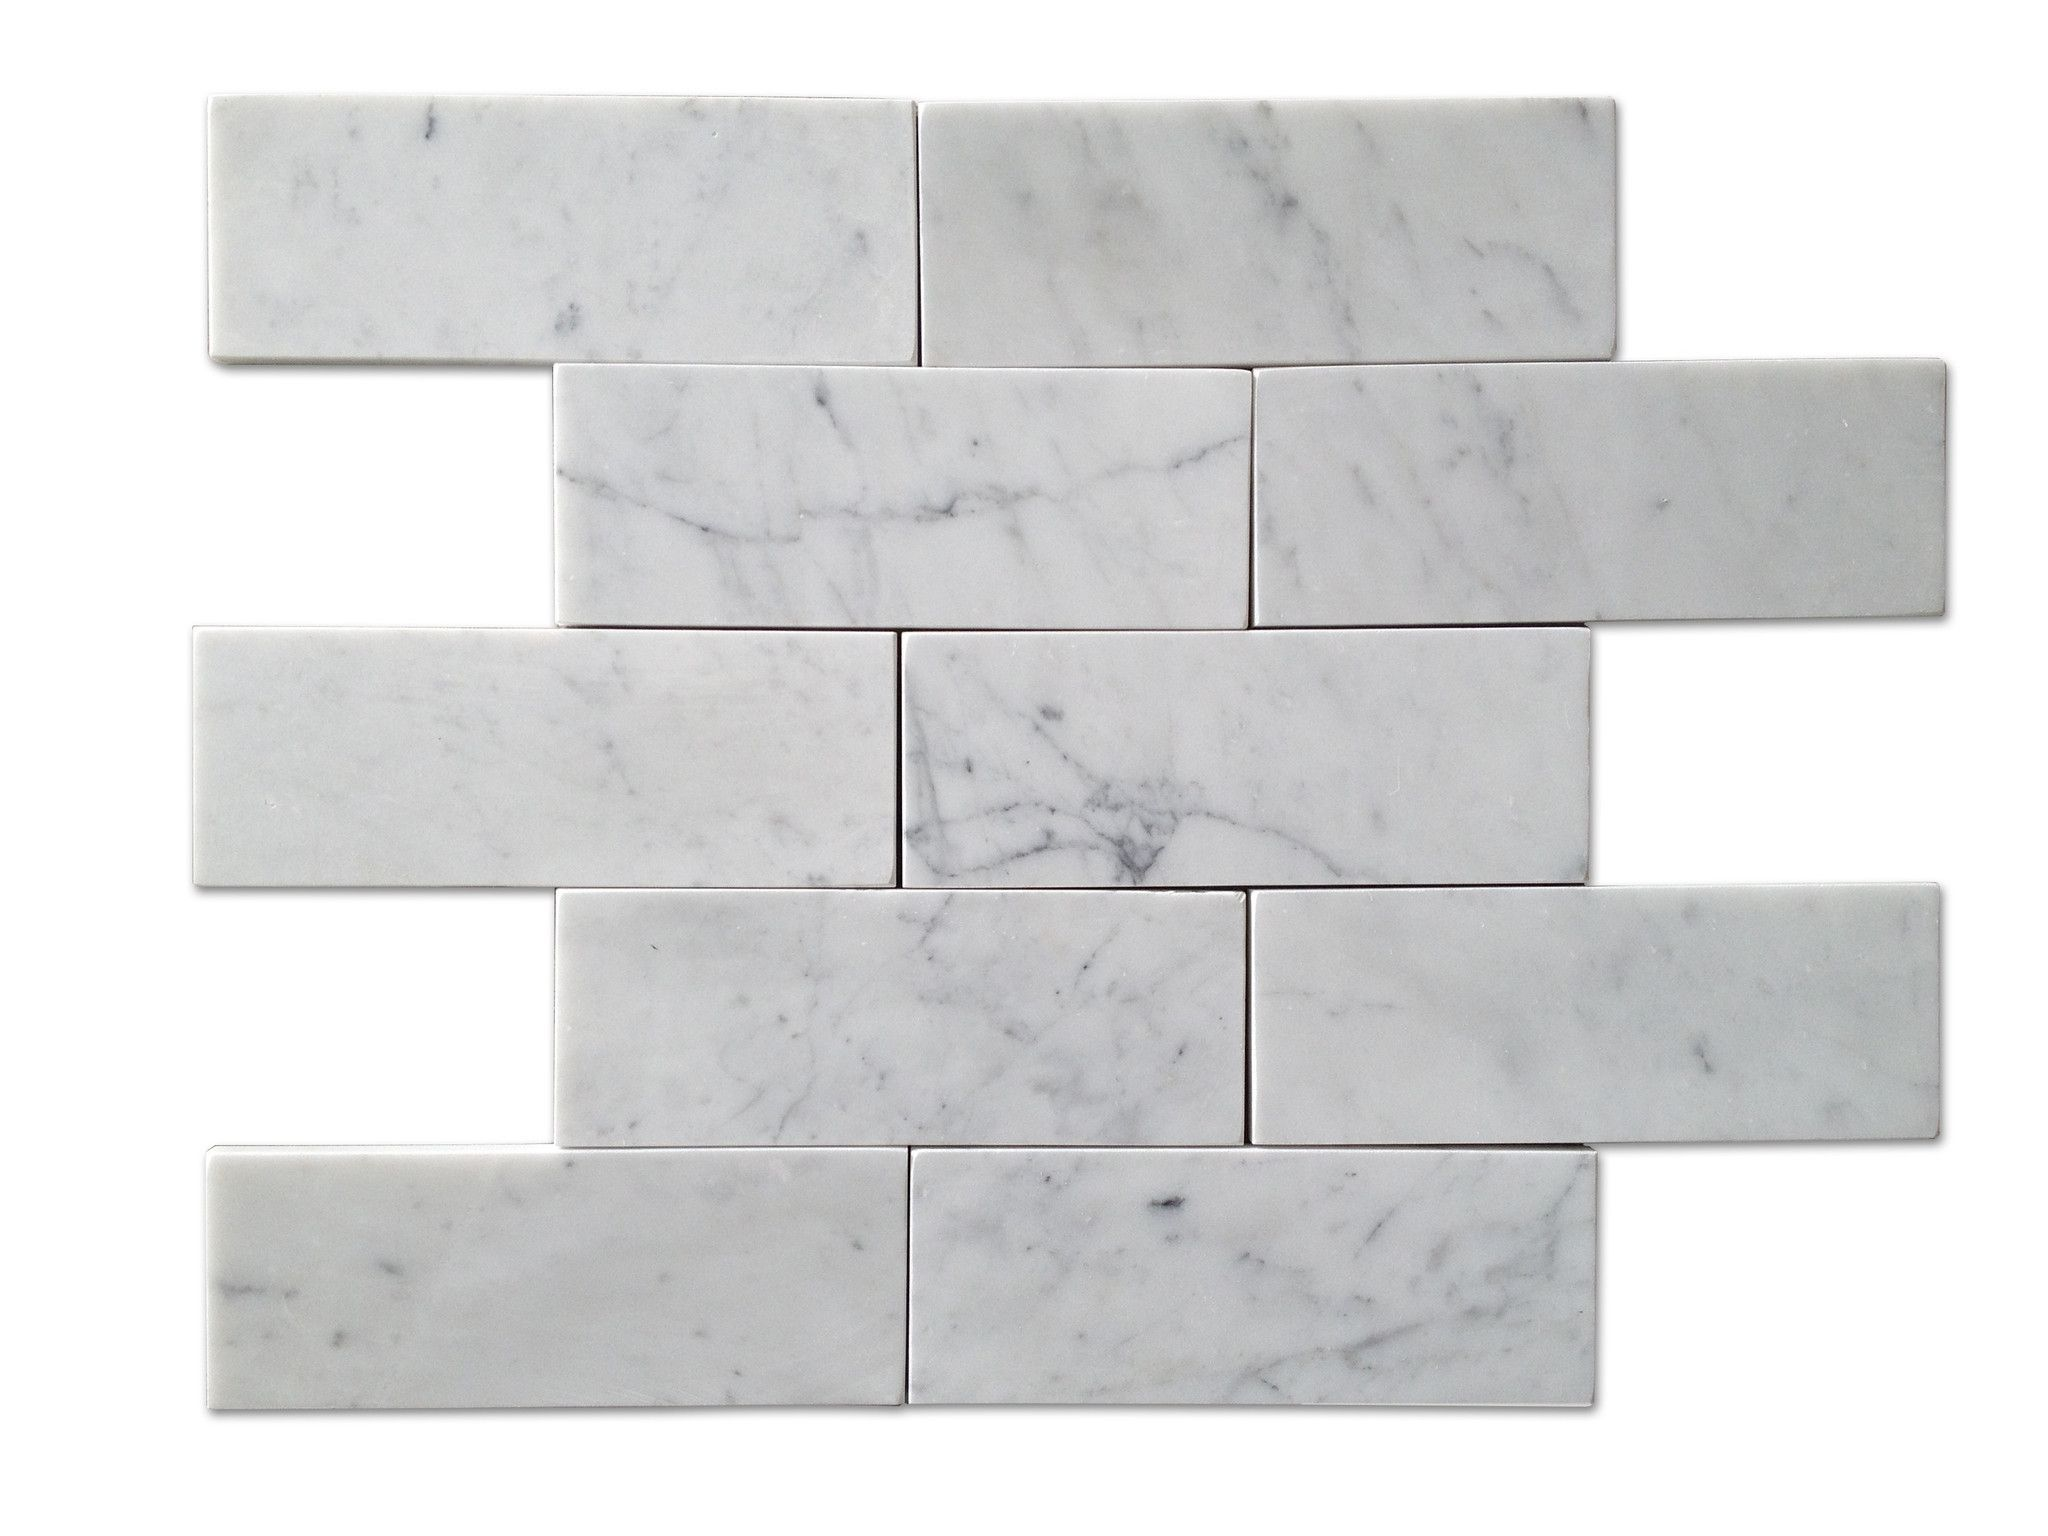 Premium carrara white marble 3x6 brick subway tile honed natural premium carrara white marble 3x6 brick subway tile honed natural stone tile this dailygadgetfo Gallery